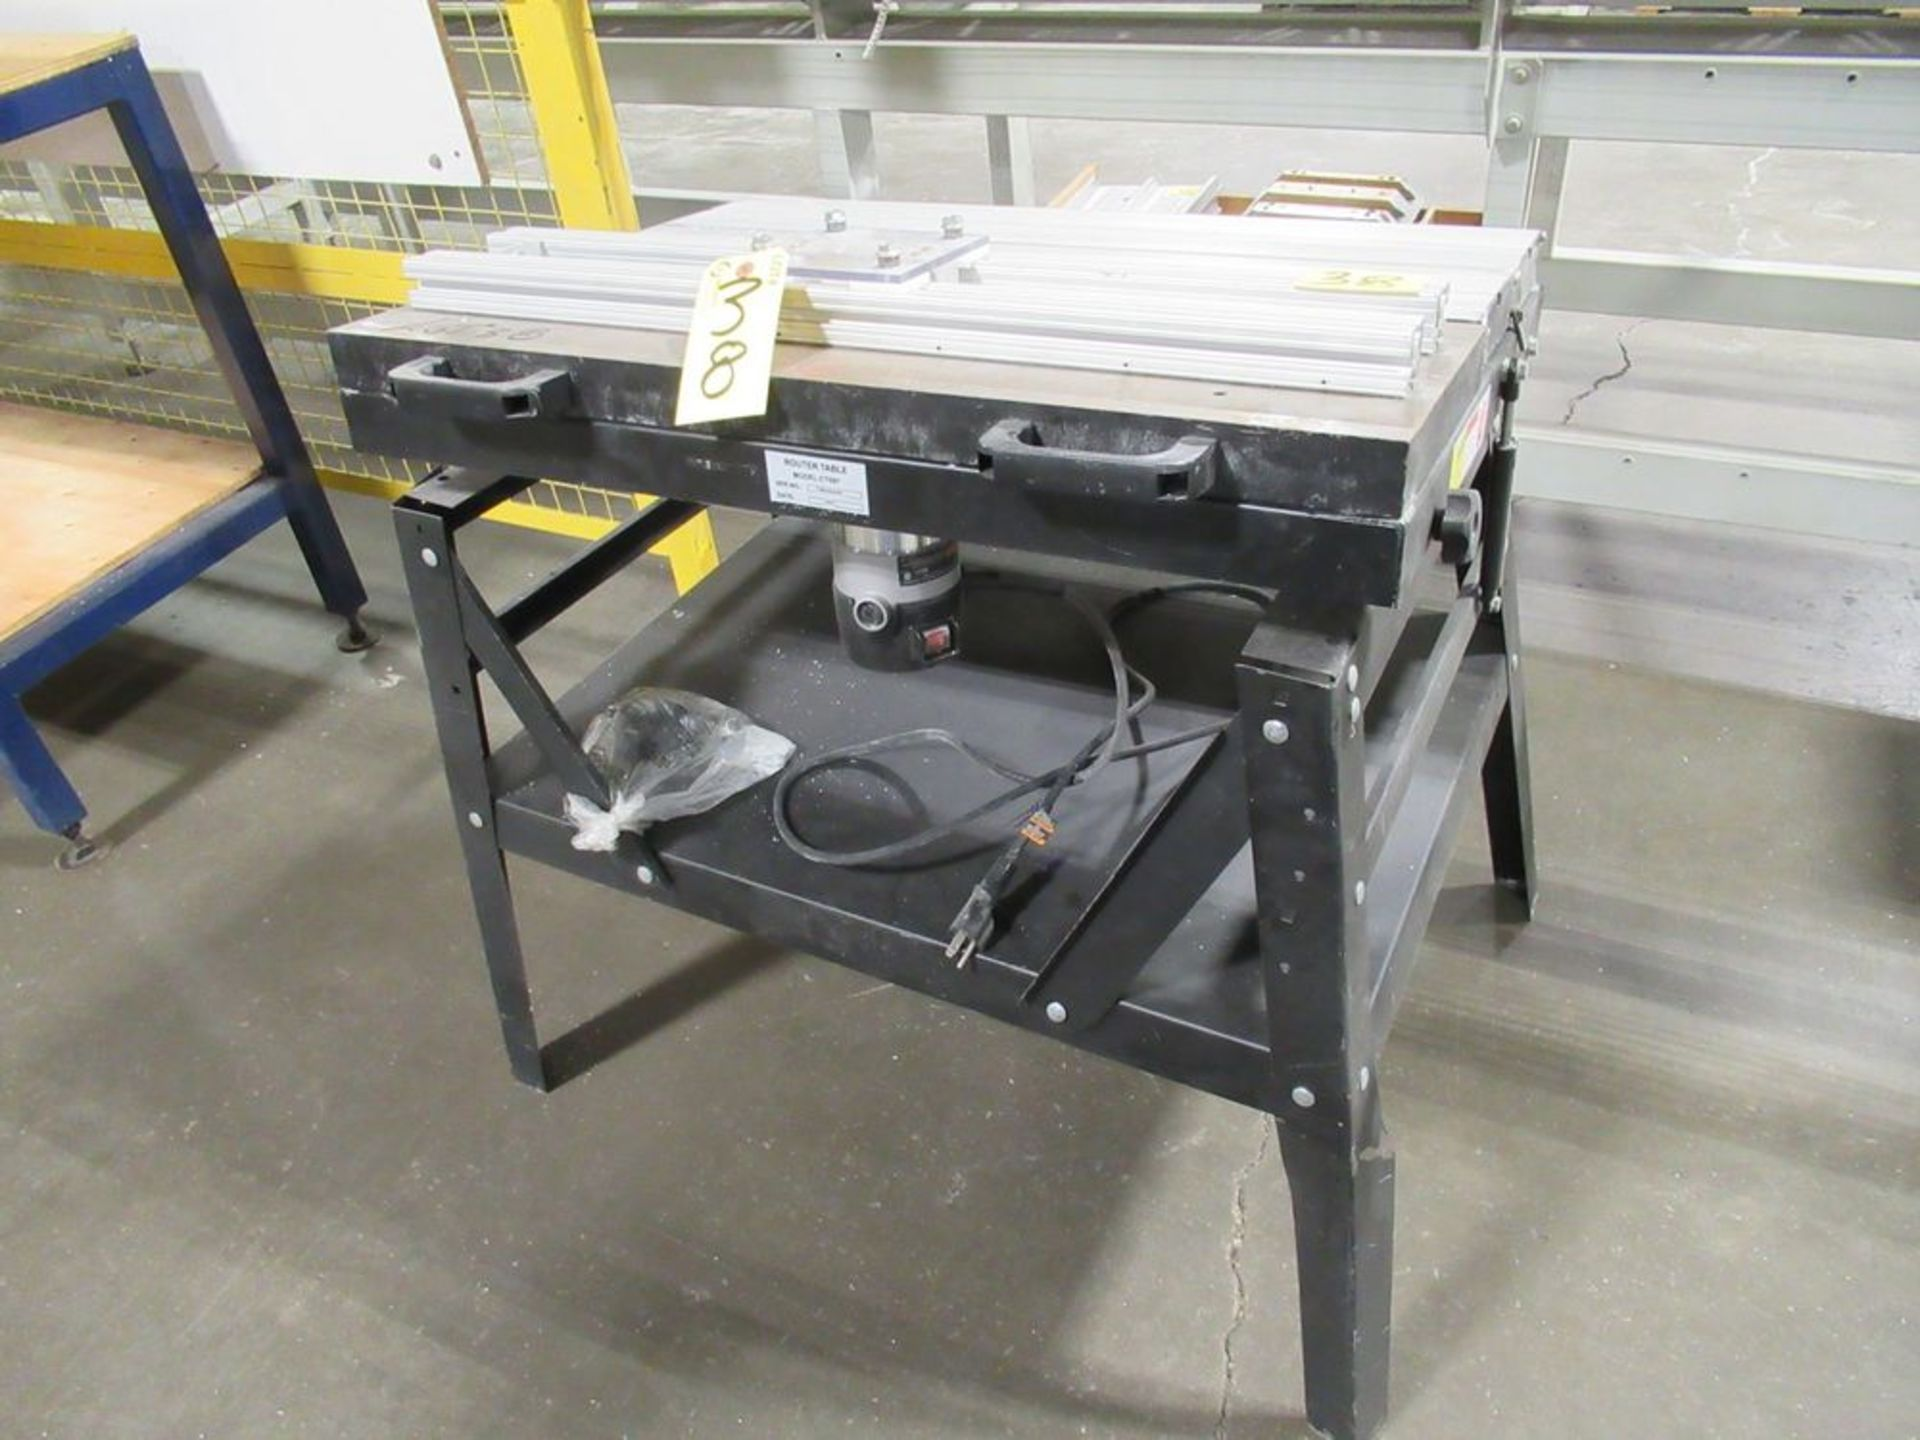 PORTER CABLE 1001 ROUTER W/ 2012 CT097 ROUTER TABLE, S/N 11SB-006-03-24 - Image 2 of 4